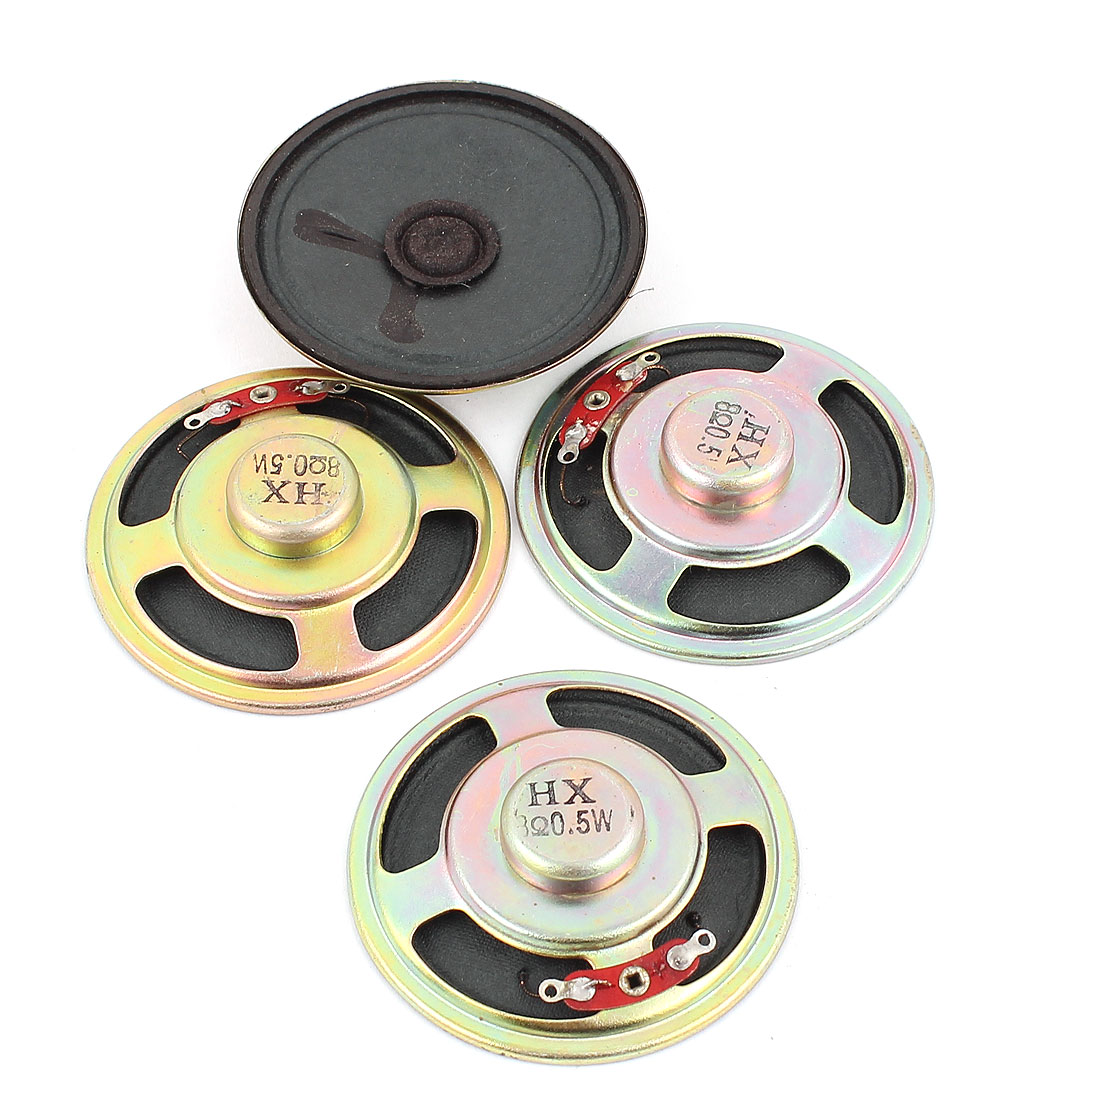 0.5W 8 Ohm 57mm Diameter Internal Magnet Speaker Loudspeaker 4Pcs